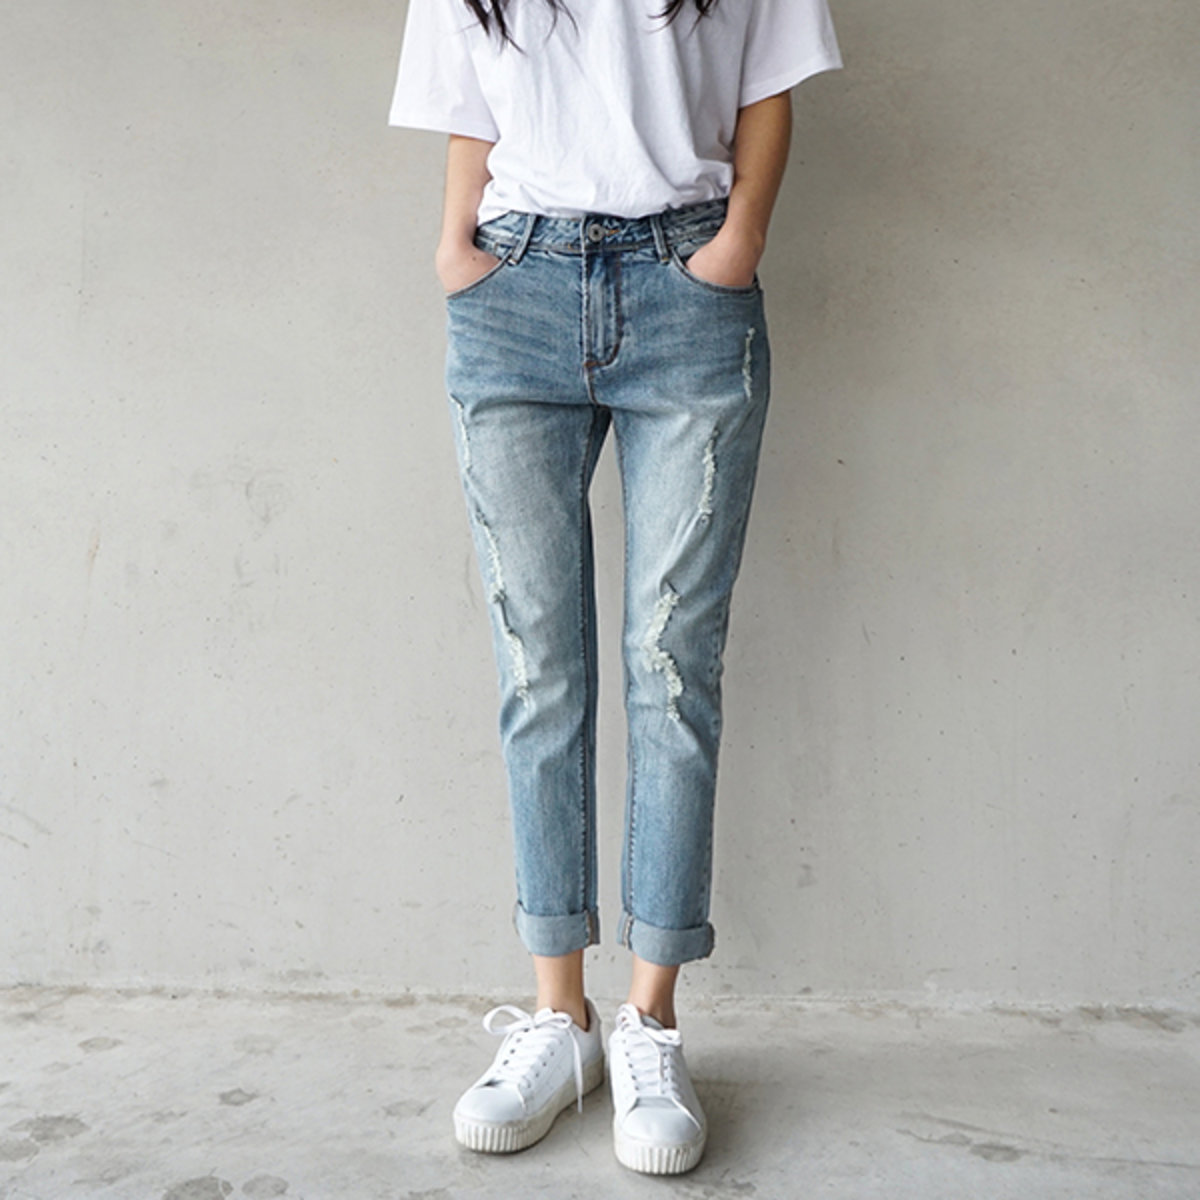 Na343 Women'S Baggy Jeans